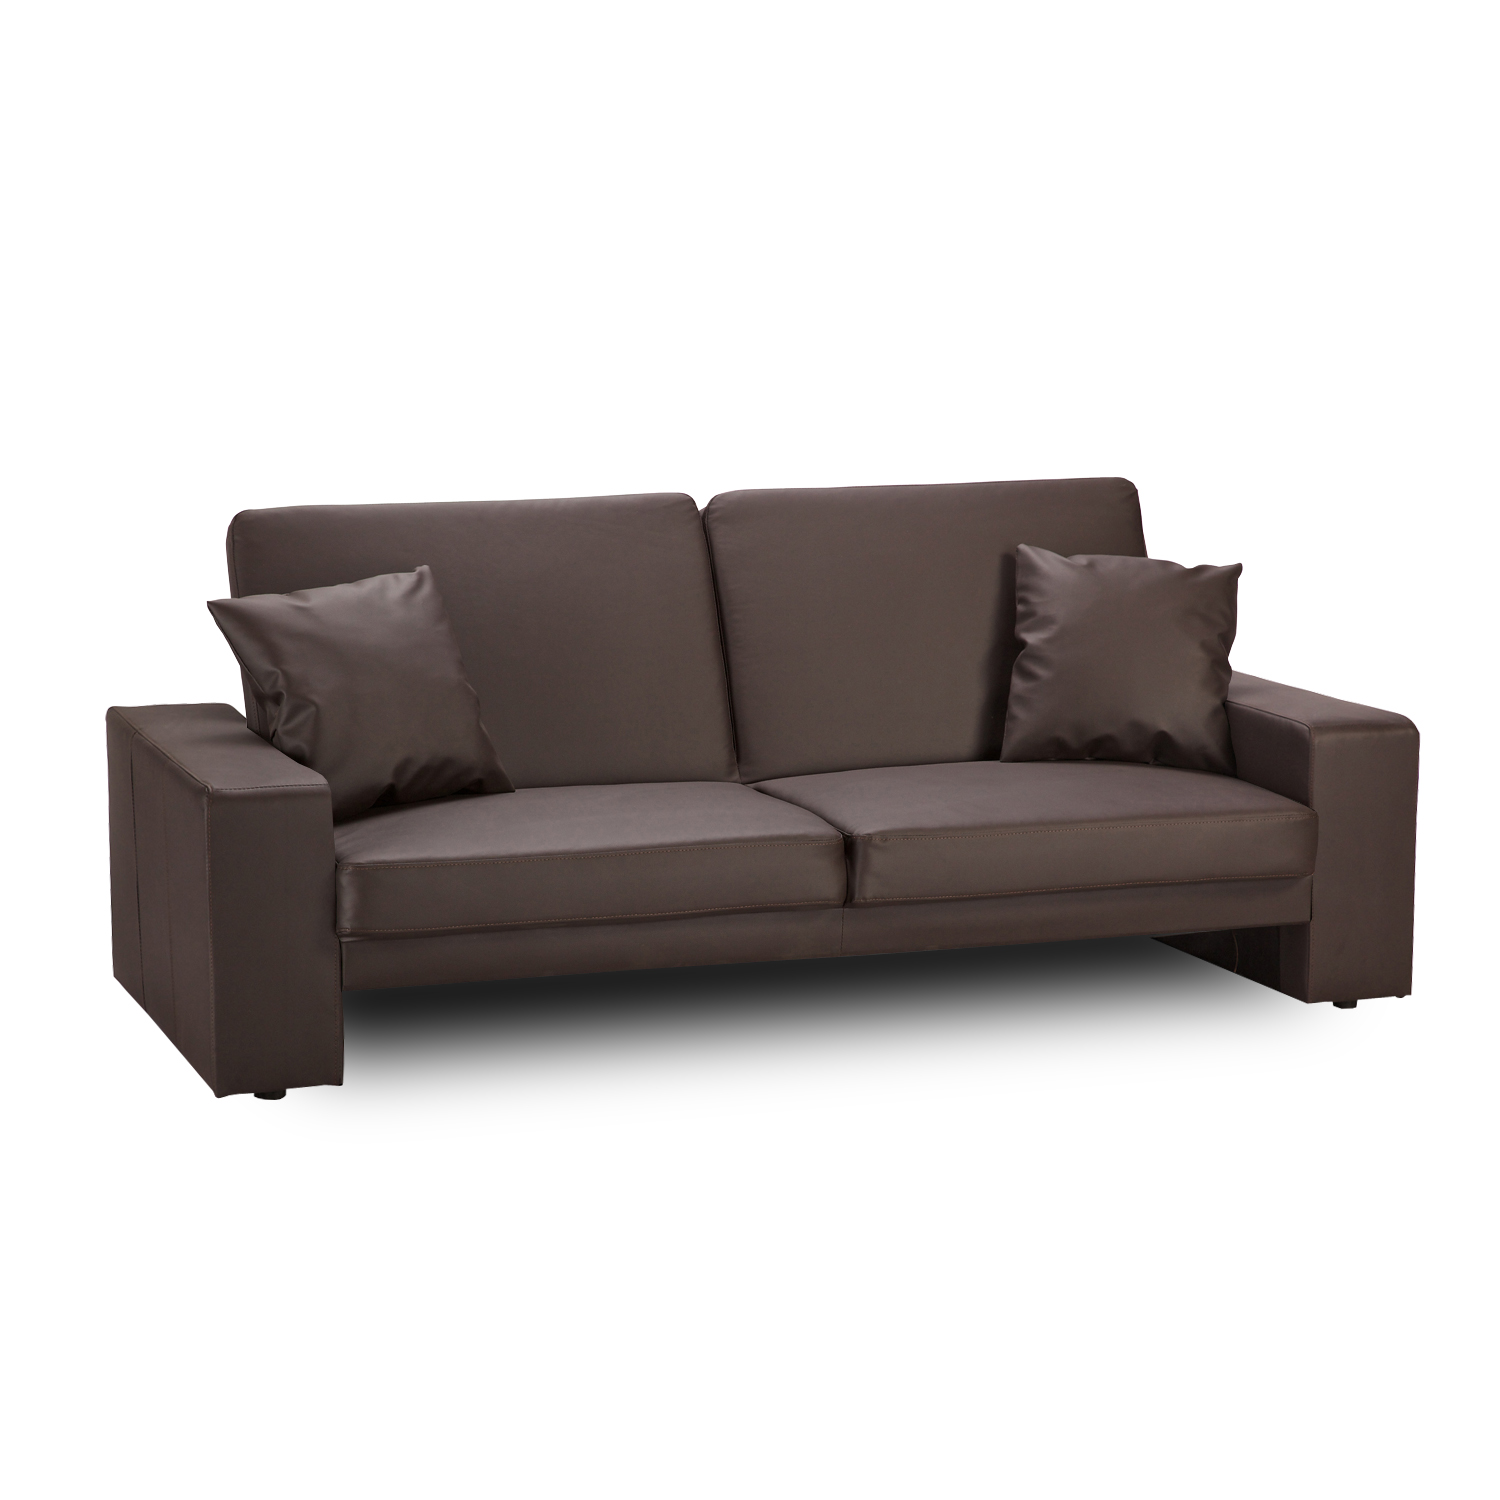 ex display sofa bed uk four hands carnegie cuba brown scatter cushions x2